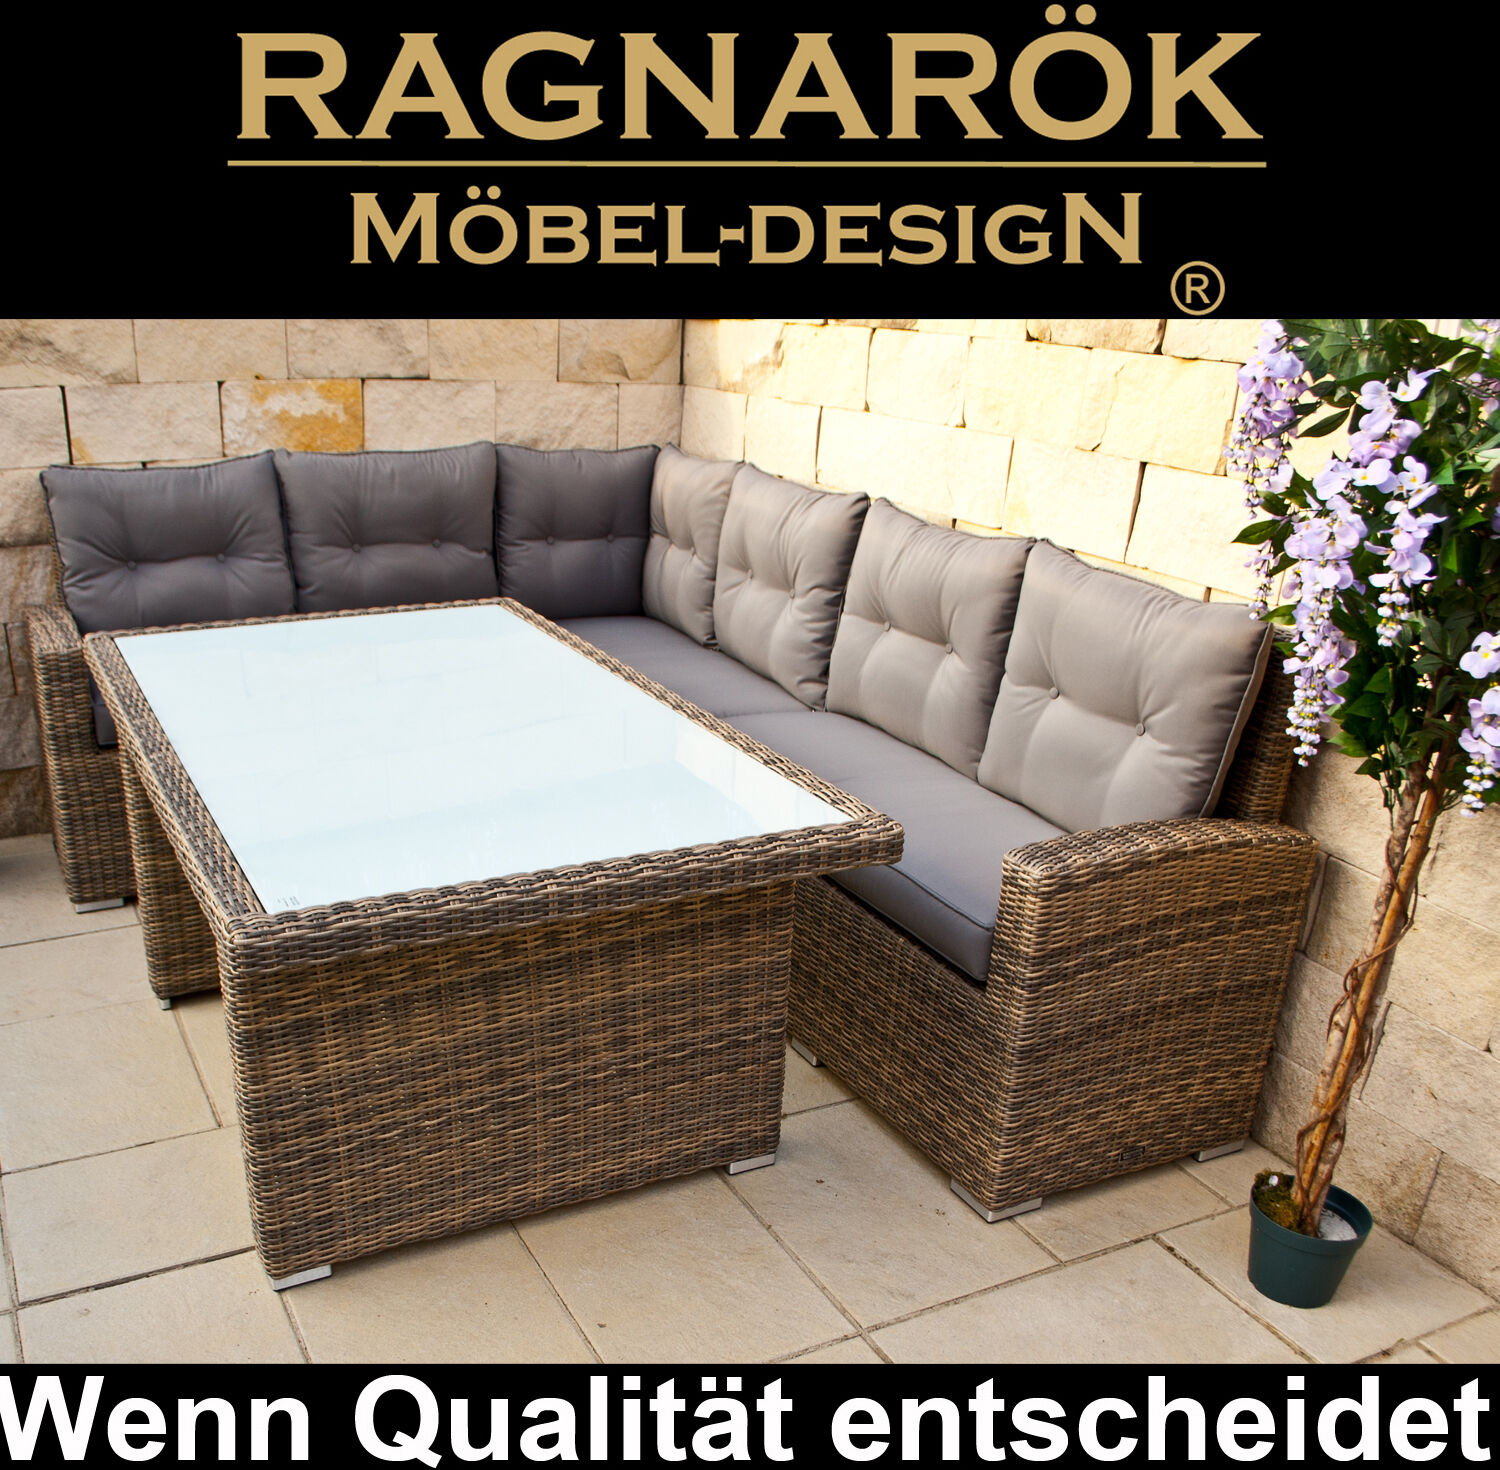 poly rattan gartenm bel hohe dinning lounge ragnar k m beldesign esstisch set eur 699 00. Black Bedroom Furniture Sets. Home Design Ideas